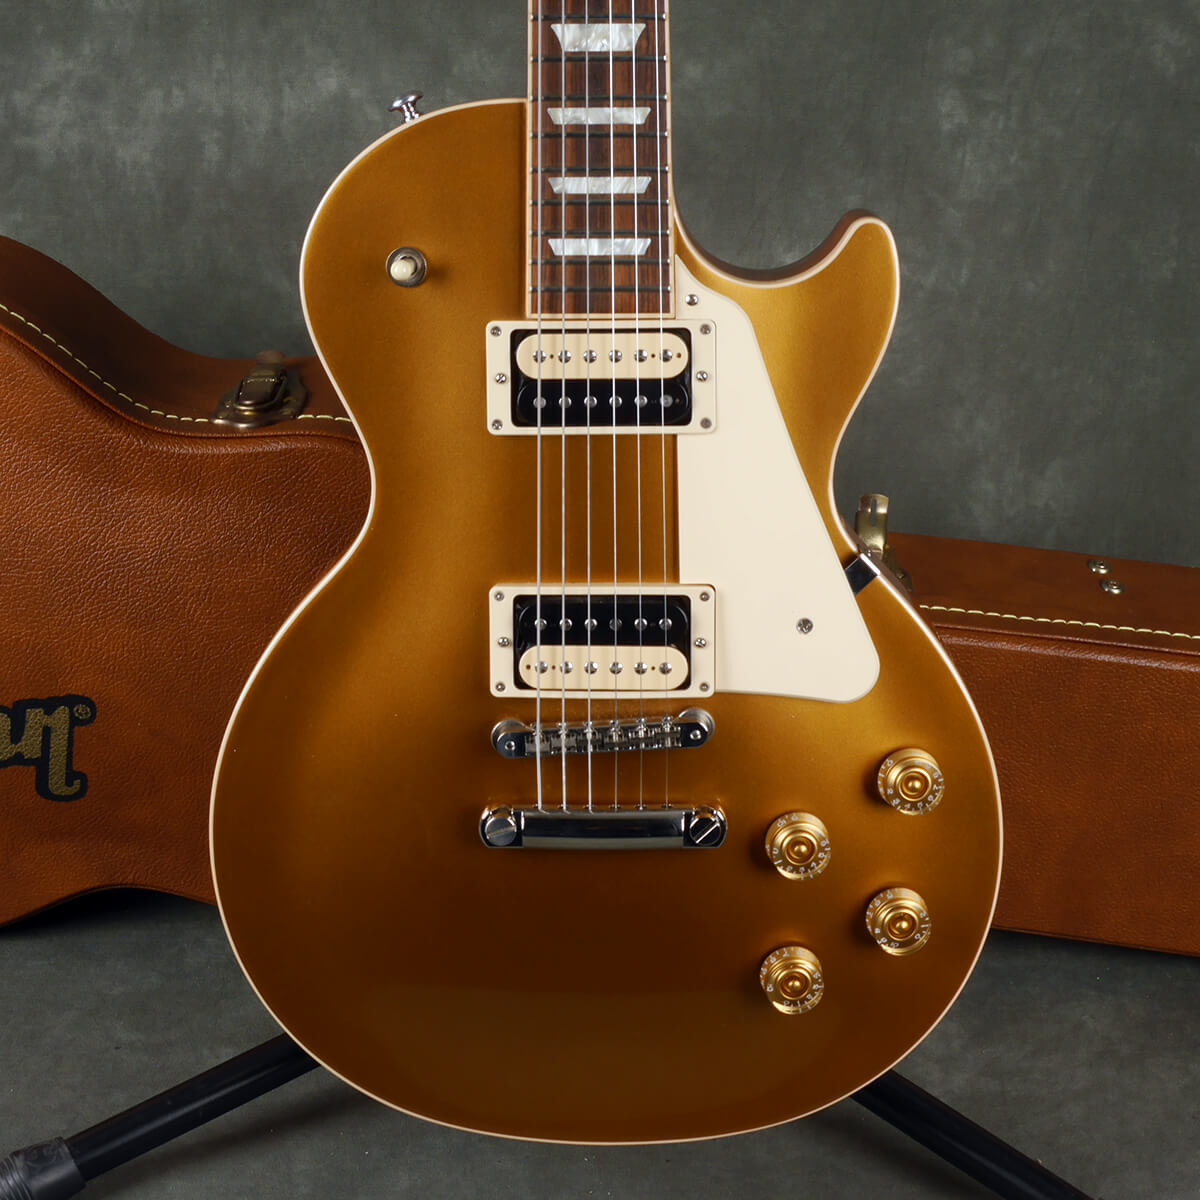 Gibson 2017 Les Paul Classic - Gold Top w/Hard Case - 2nd Hand